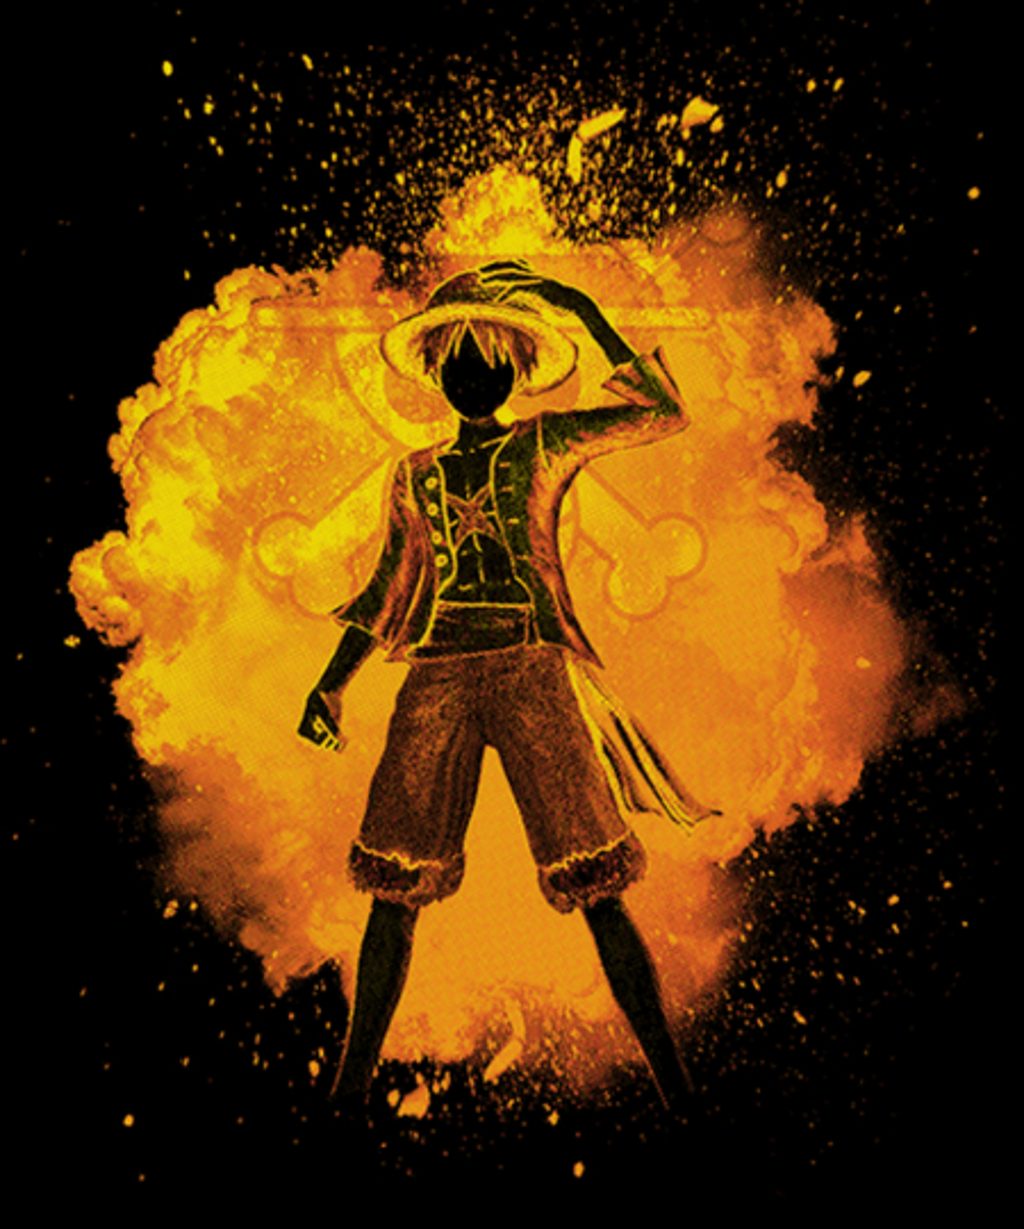 Qwertee: Soul of the Pirate